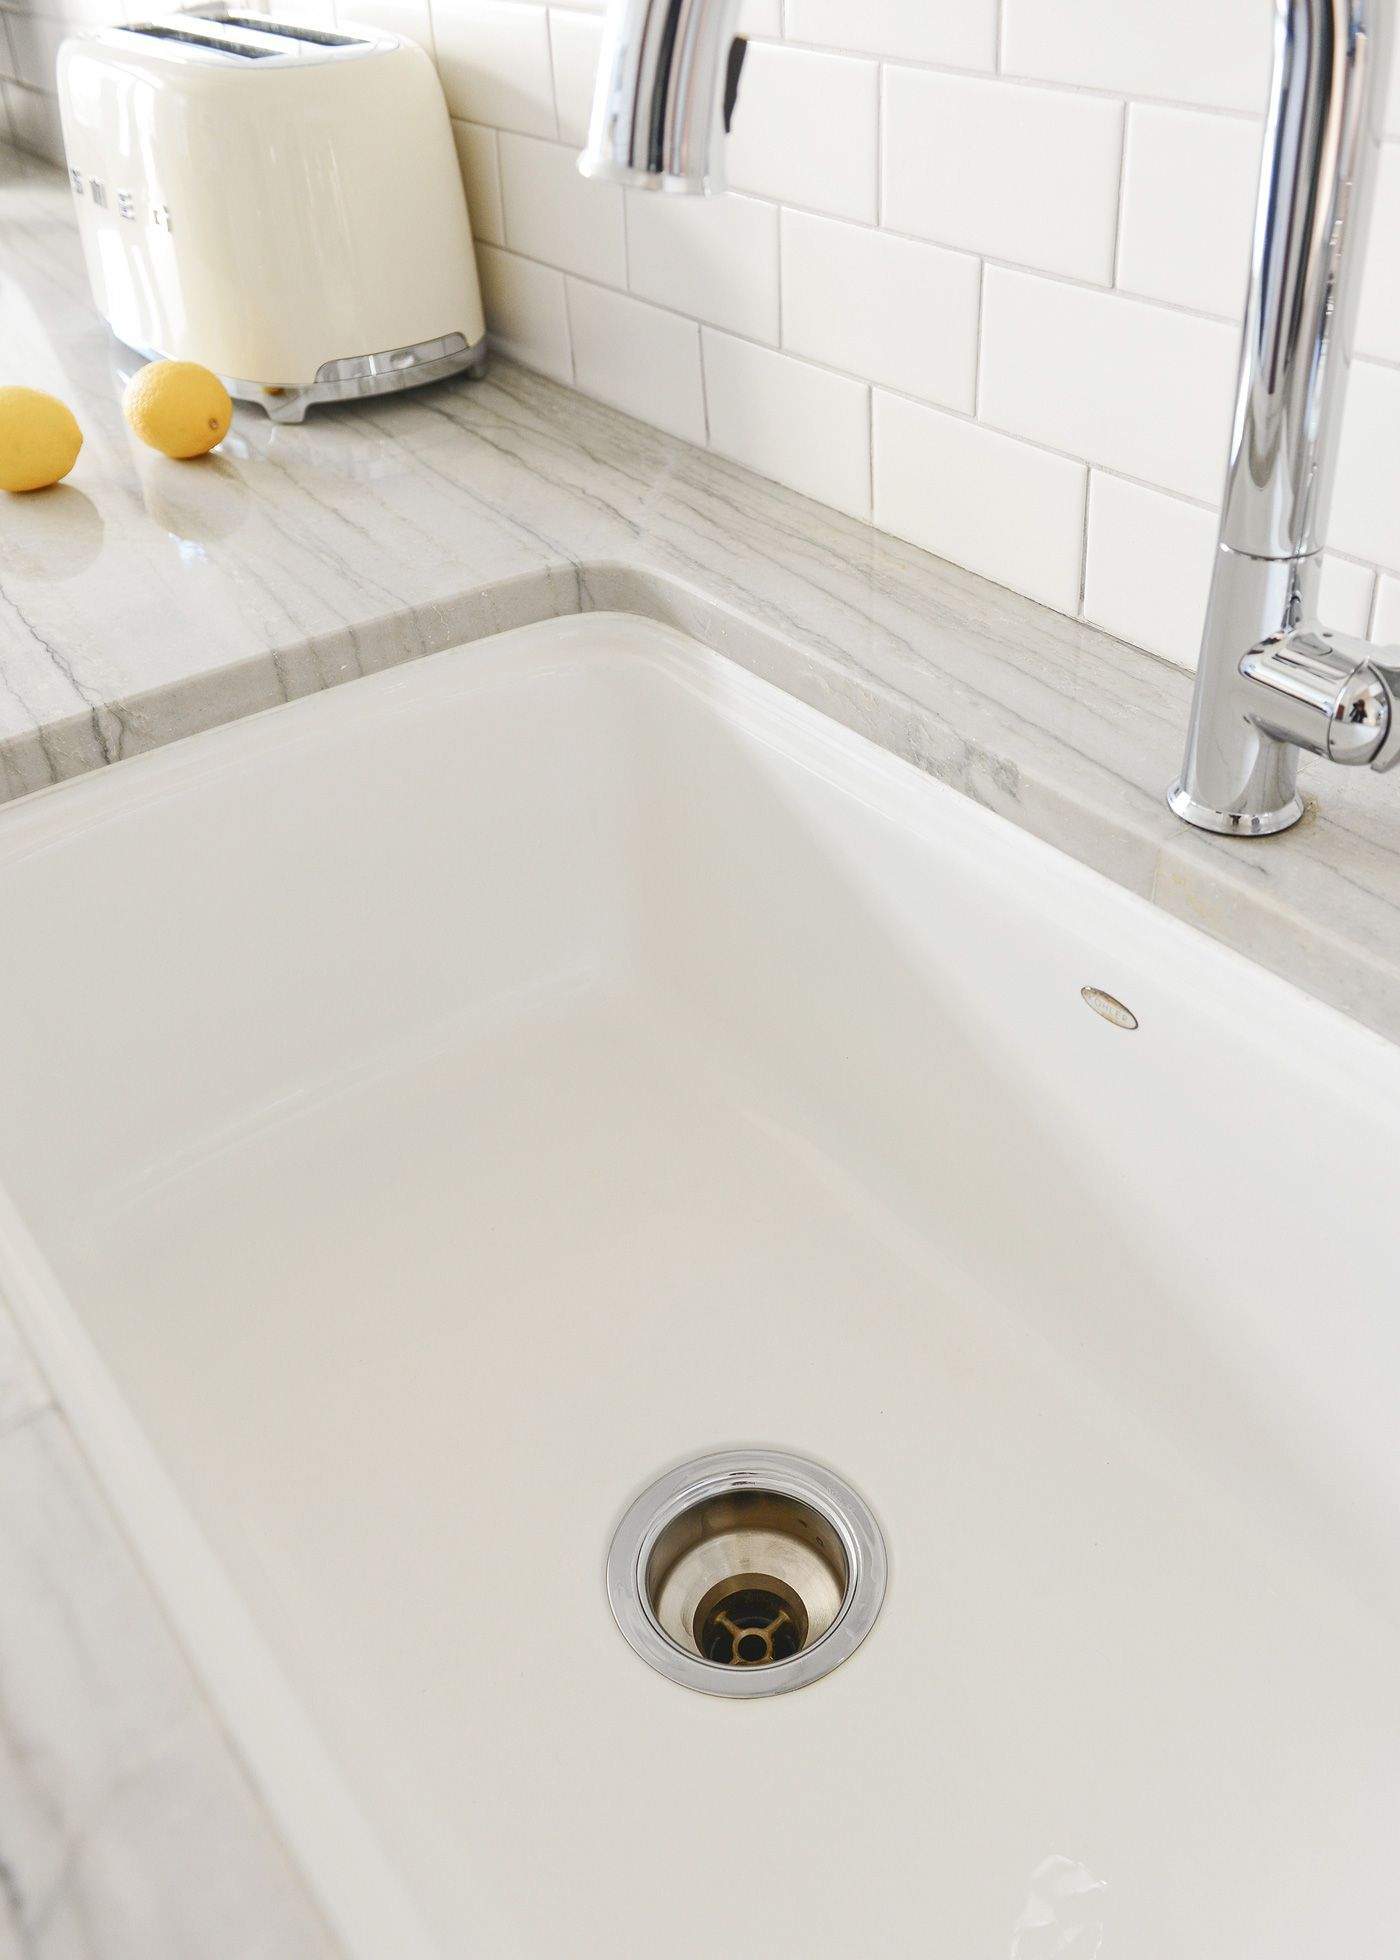 Exceptionnel How To Clean A White Enamel Sink And Keep It Looking Great! The Healthy And